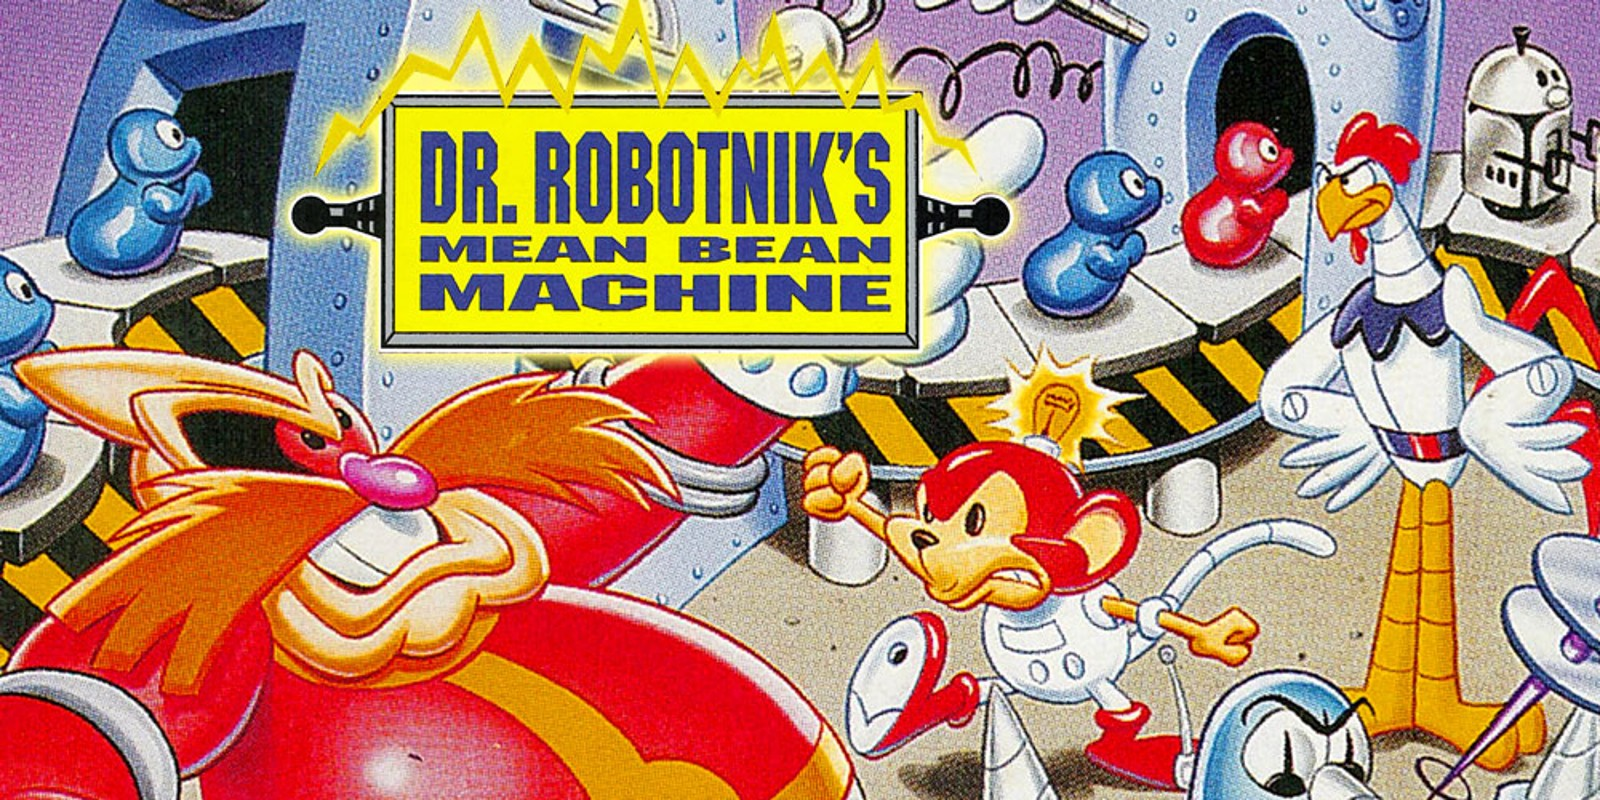 Dr. Robotnik's Mean Bean Machine™